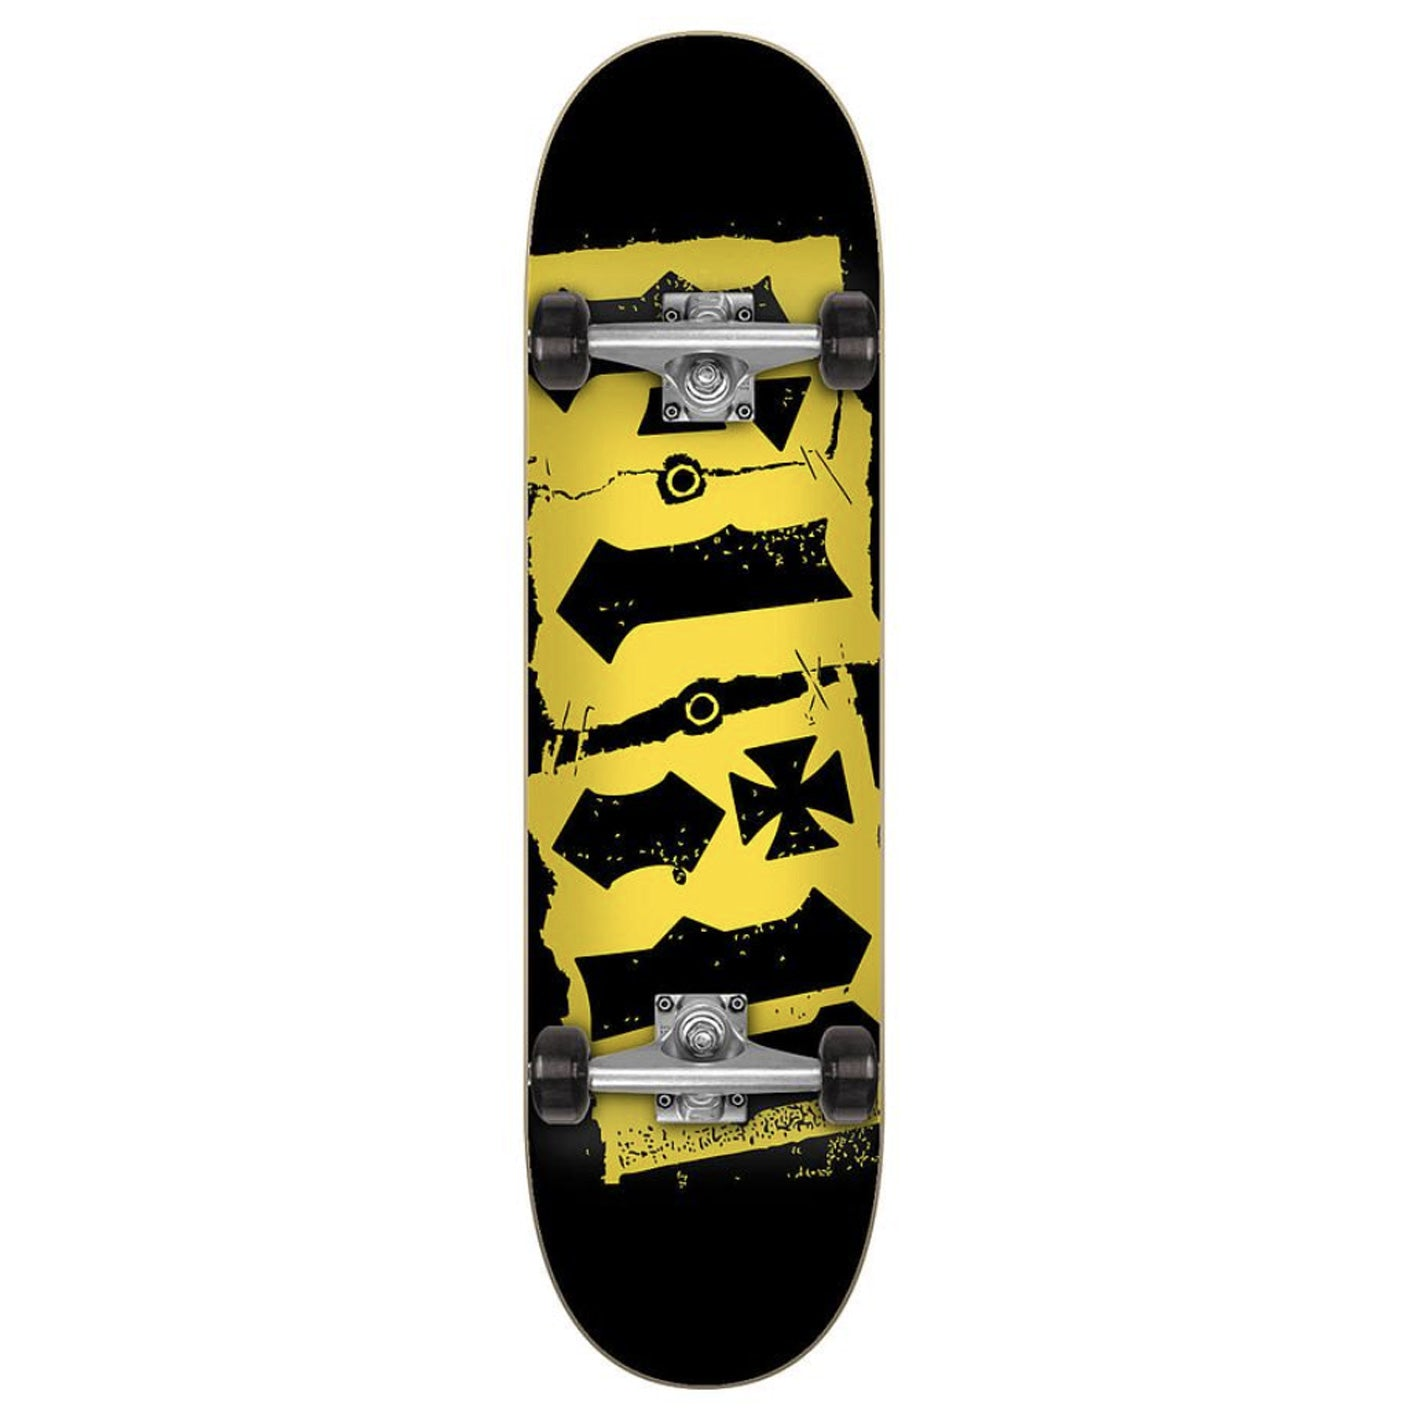 Flip Team Destroyer Complete Skateboard Black - 7.5""